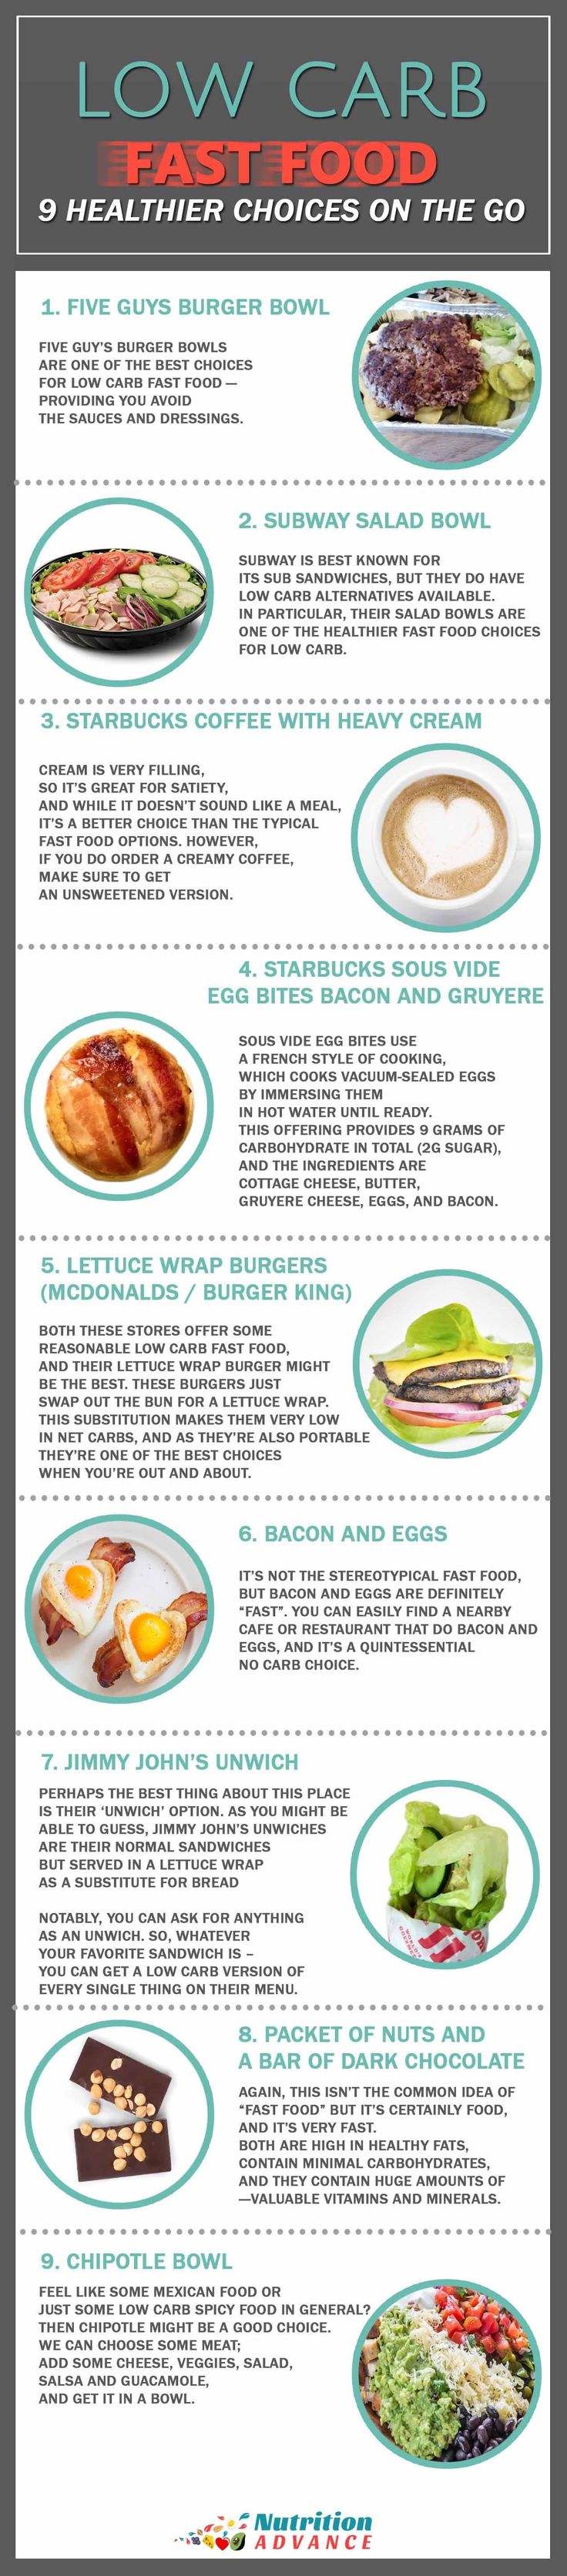 It's usually better to avoid fast food, but if you feel the need then here are some of the healthiest options - no matter where you are. Whether it's a typical fast food restaurant, cafe, or sandwich shop, here are some of the best low carb fast foods. Includes Five Guys, Subway, Starbucks, Burger King, McDonalds, Jimmy Johns, Chipotle, and a few cafe and shop options.